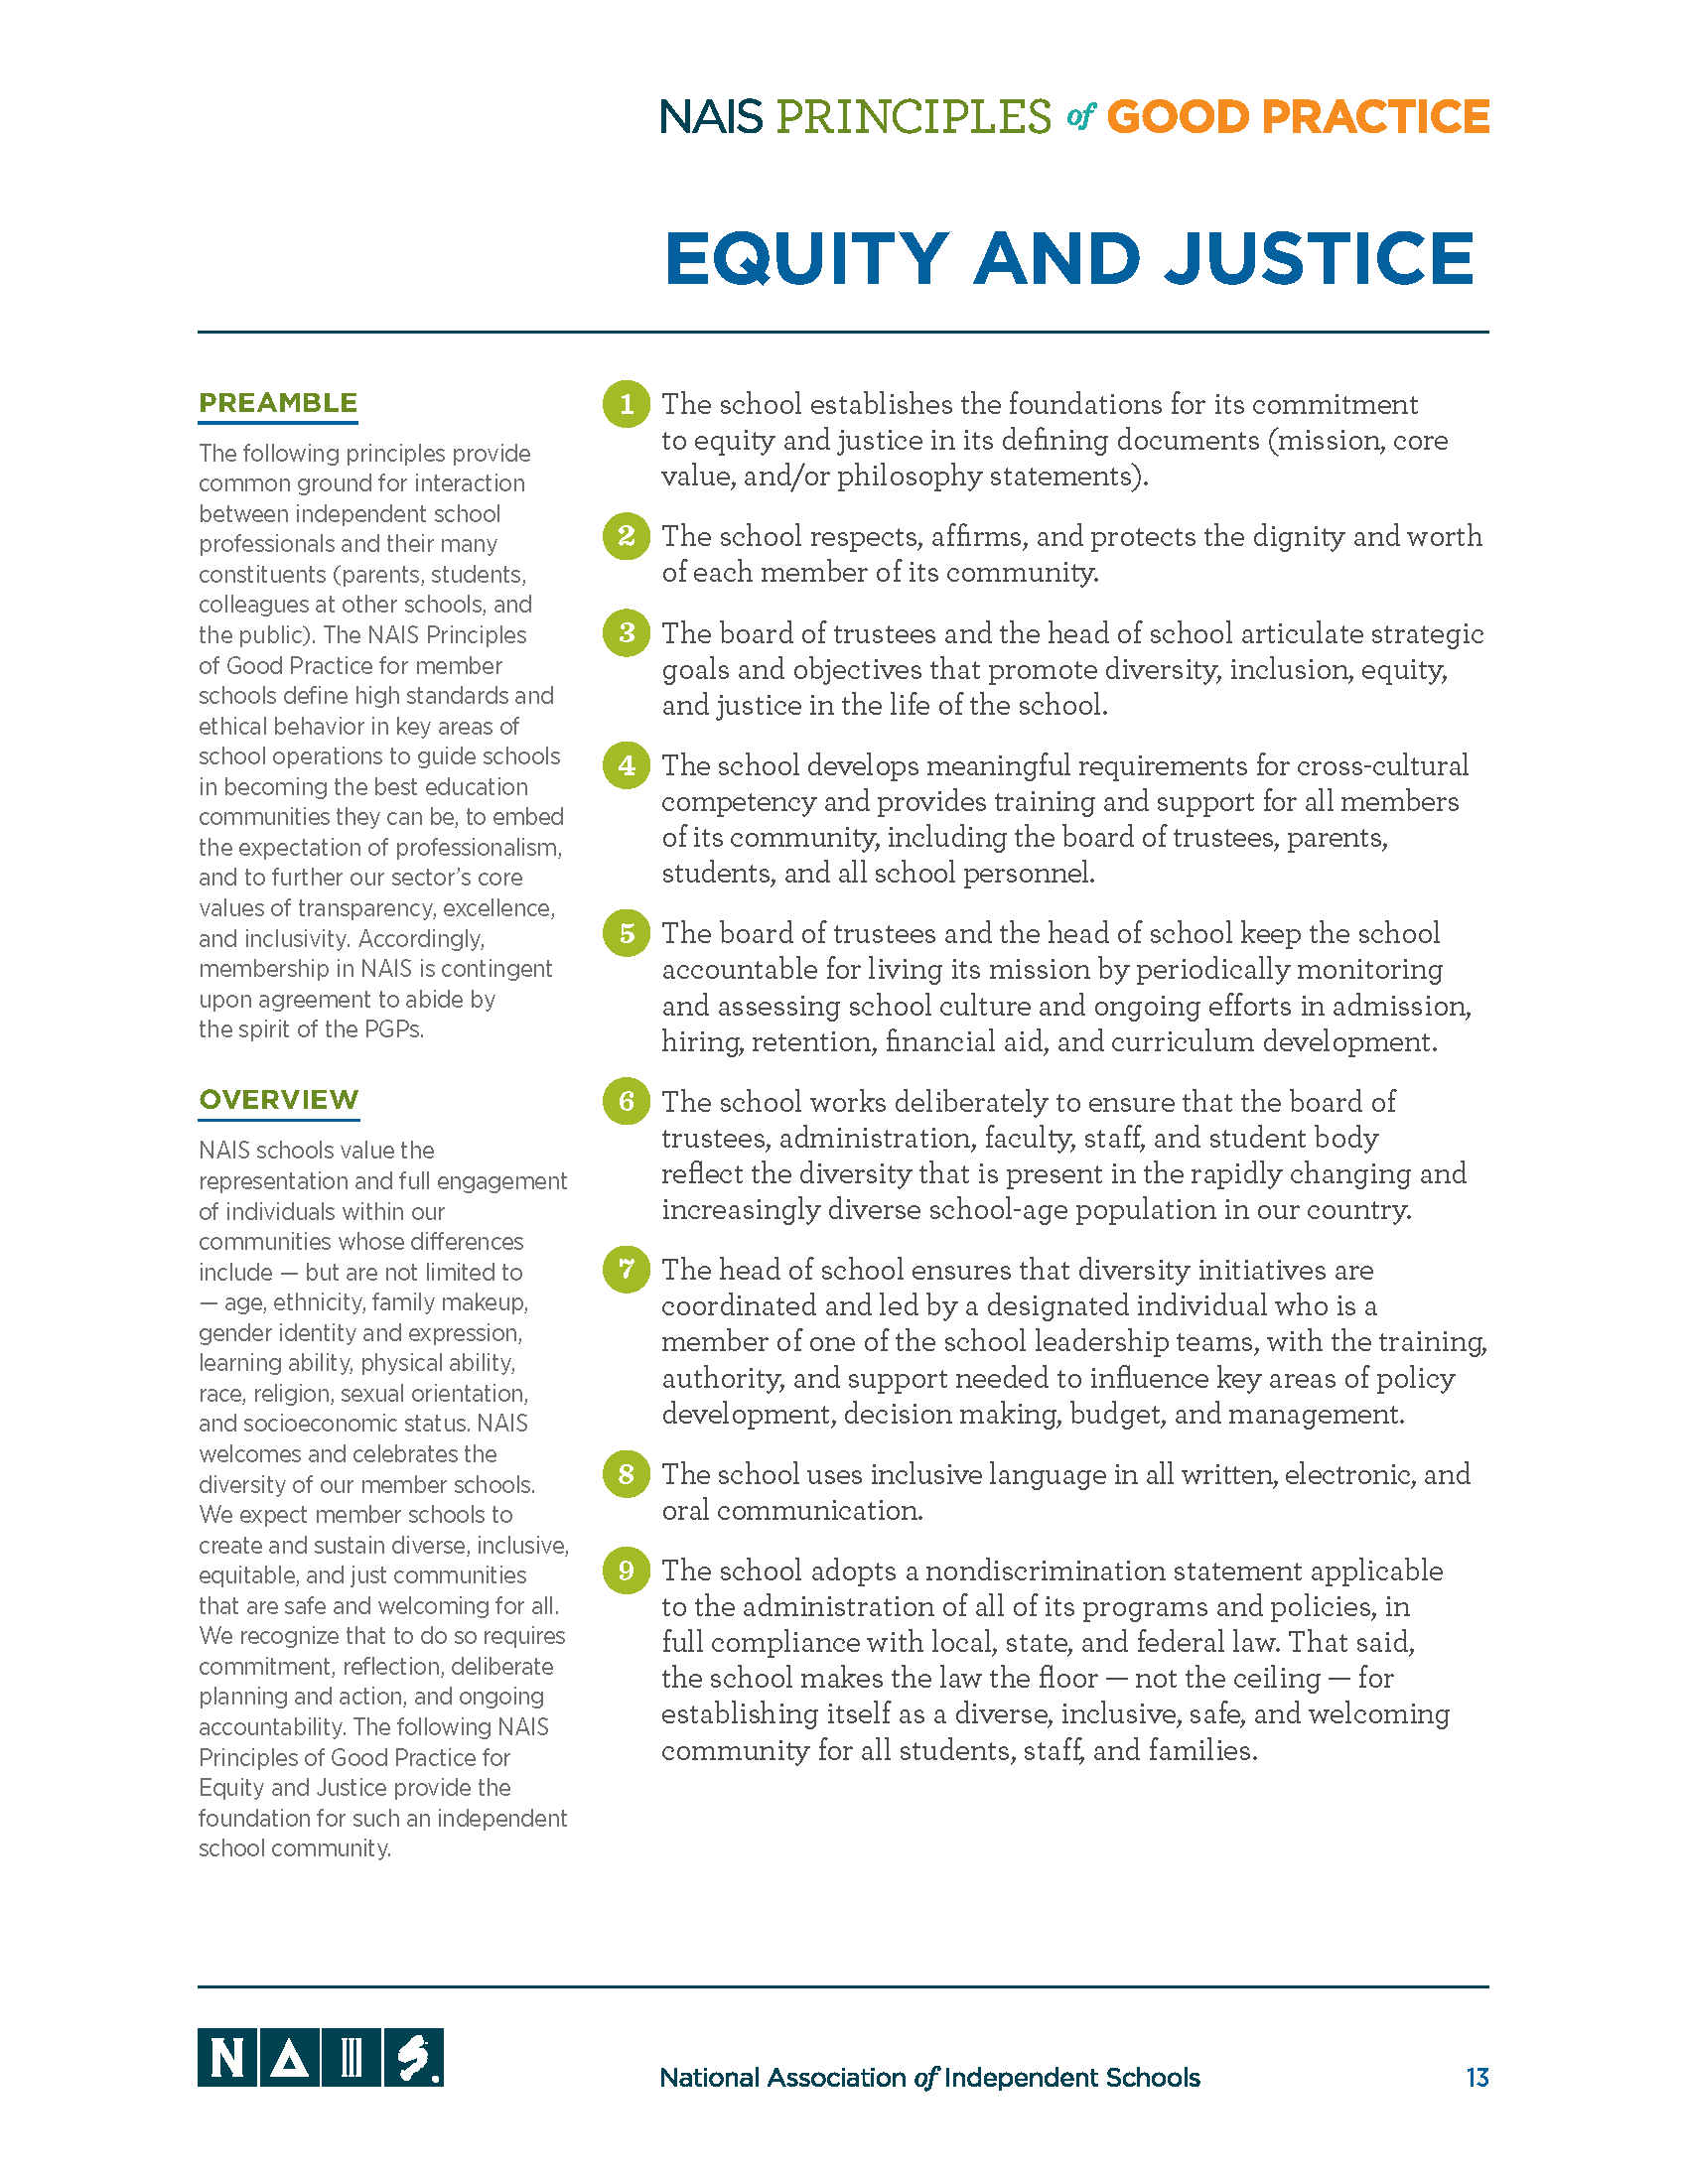 NAIS Principles of good practice: Equity and justice